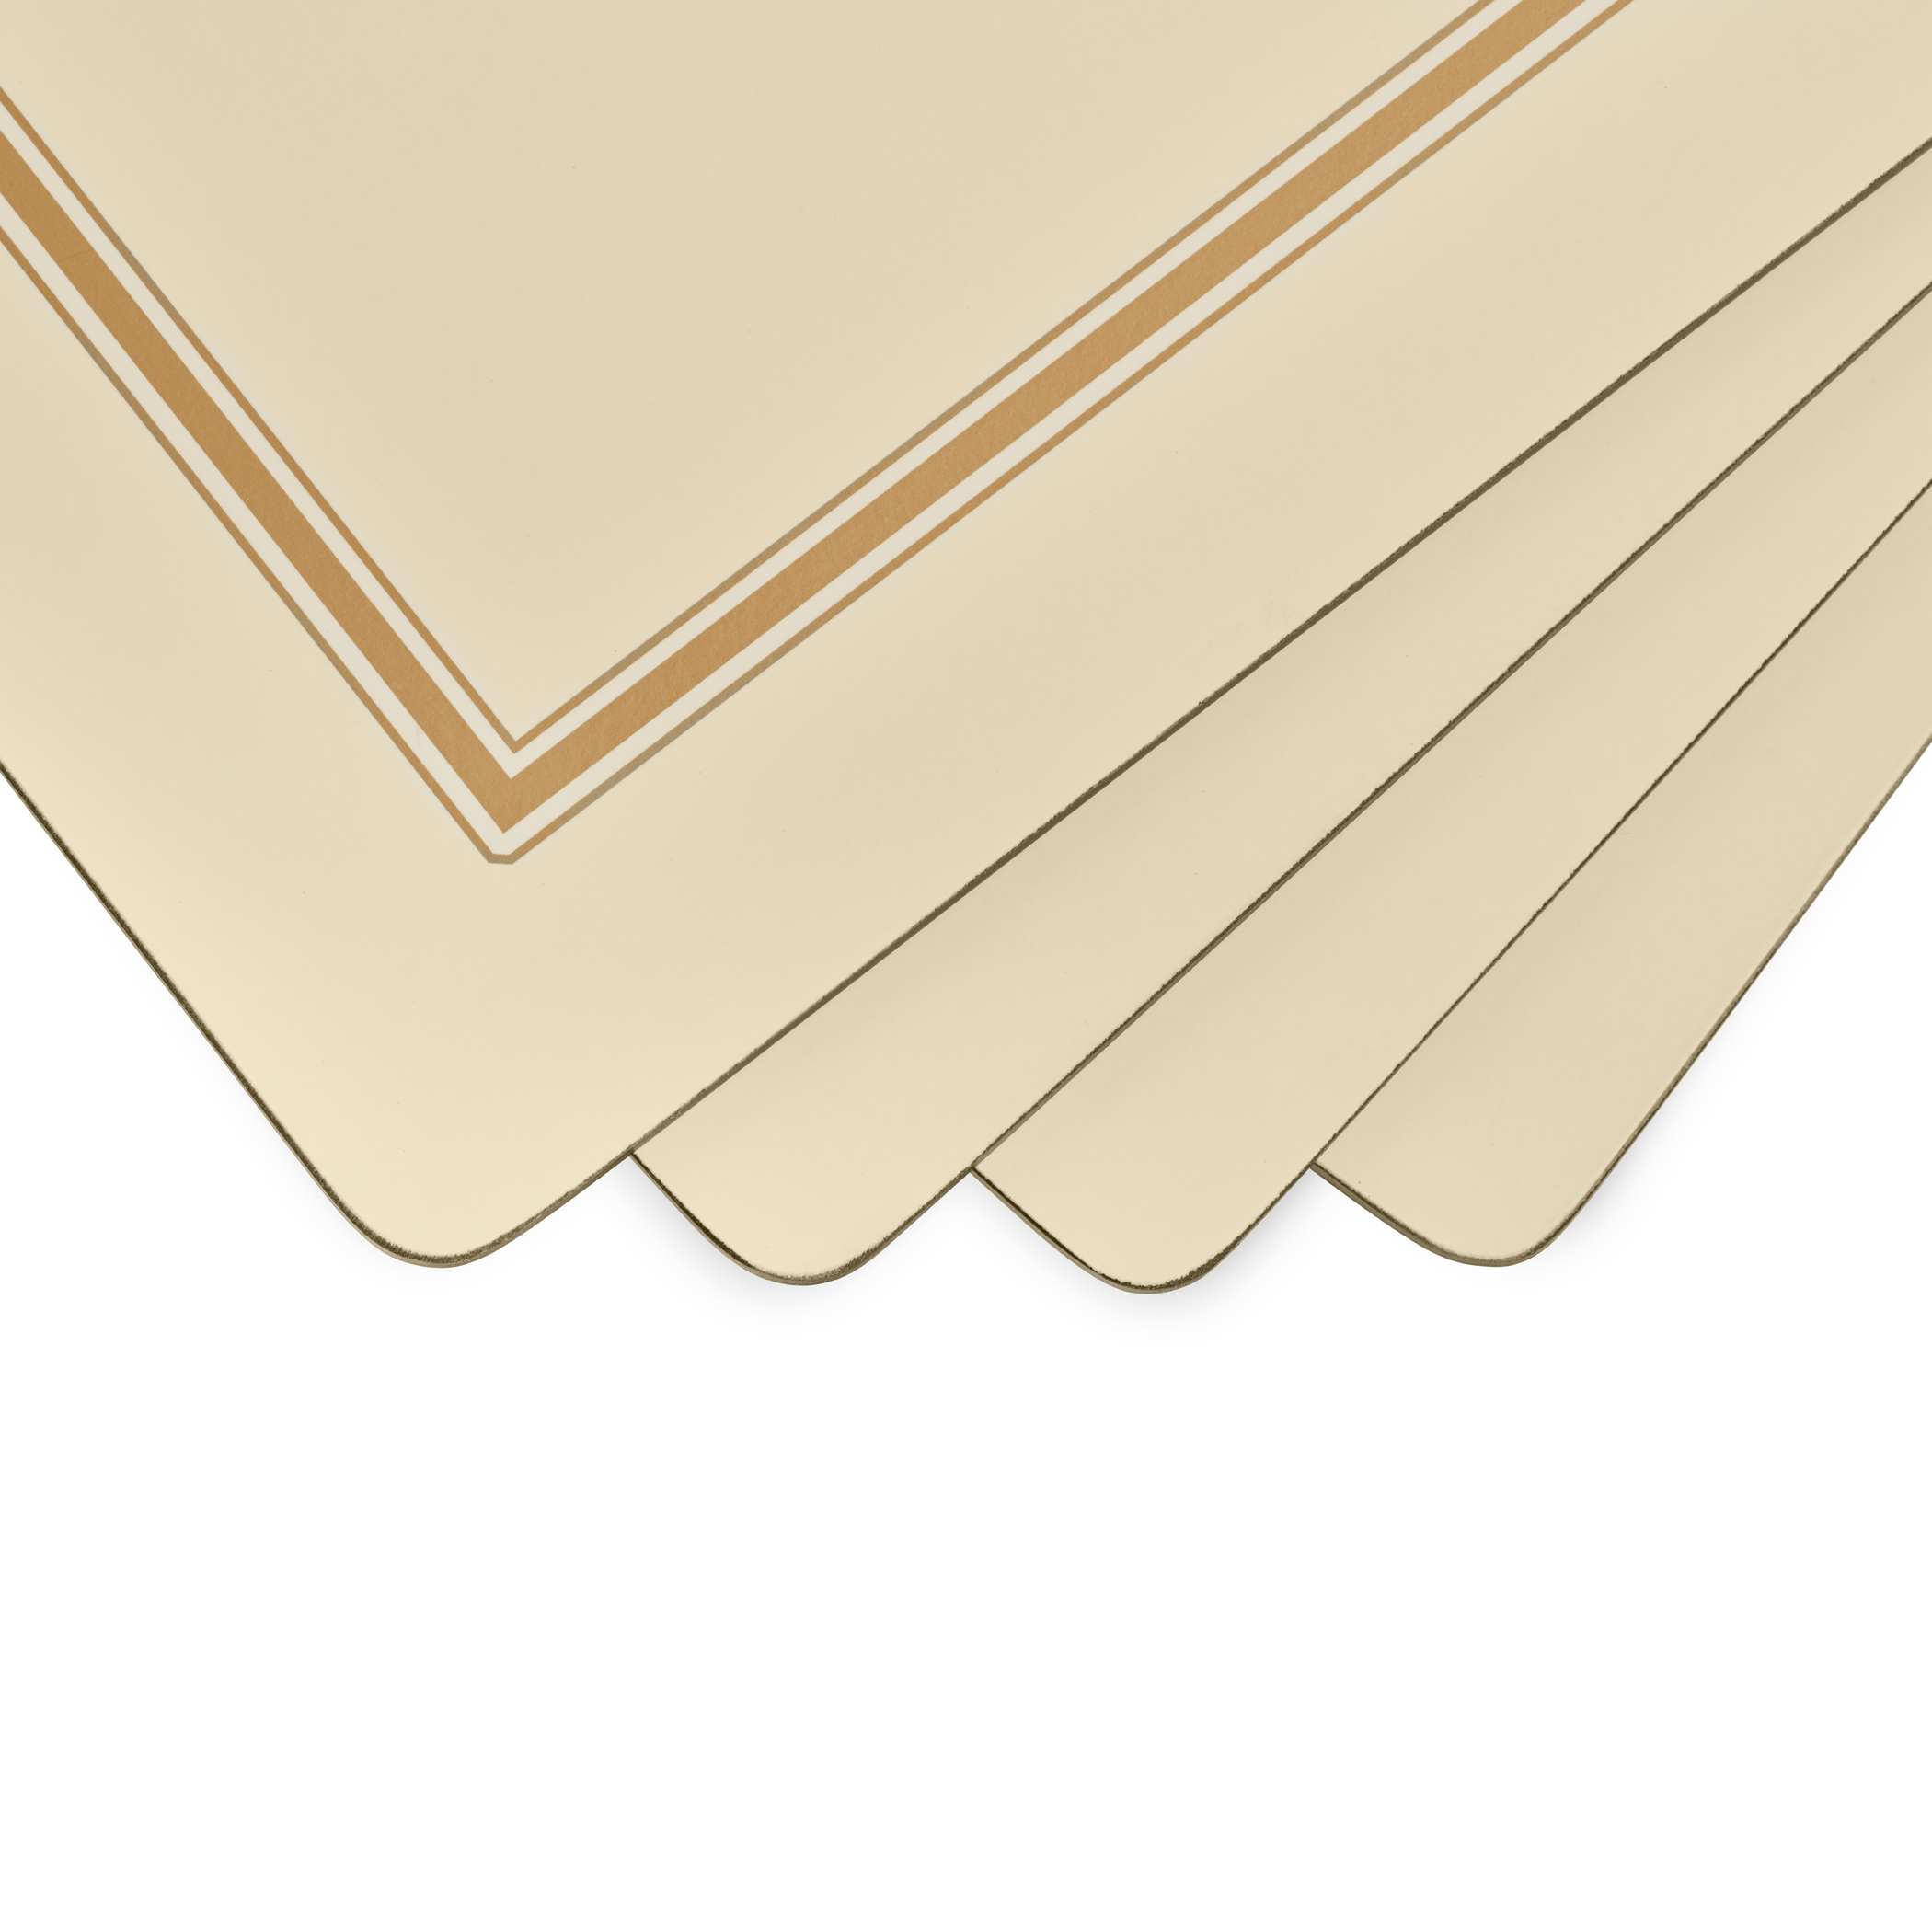 Pimpernel Classic Cream Placemats Set of 4 image number 1